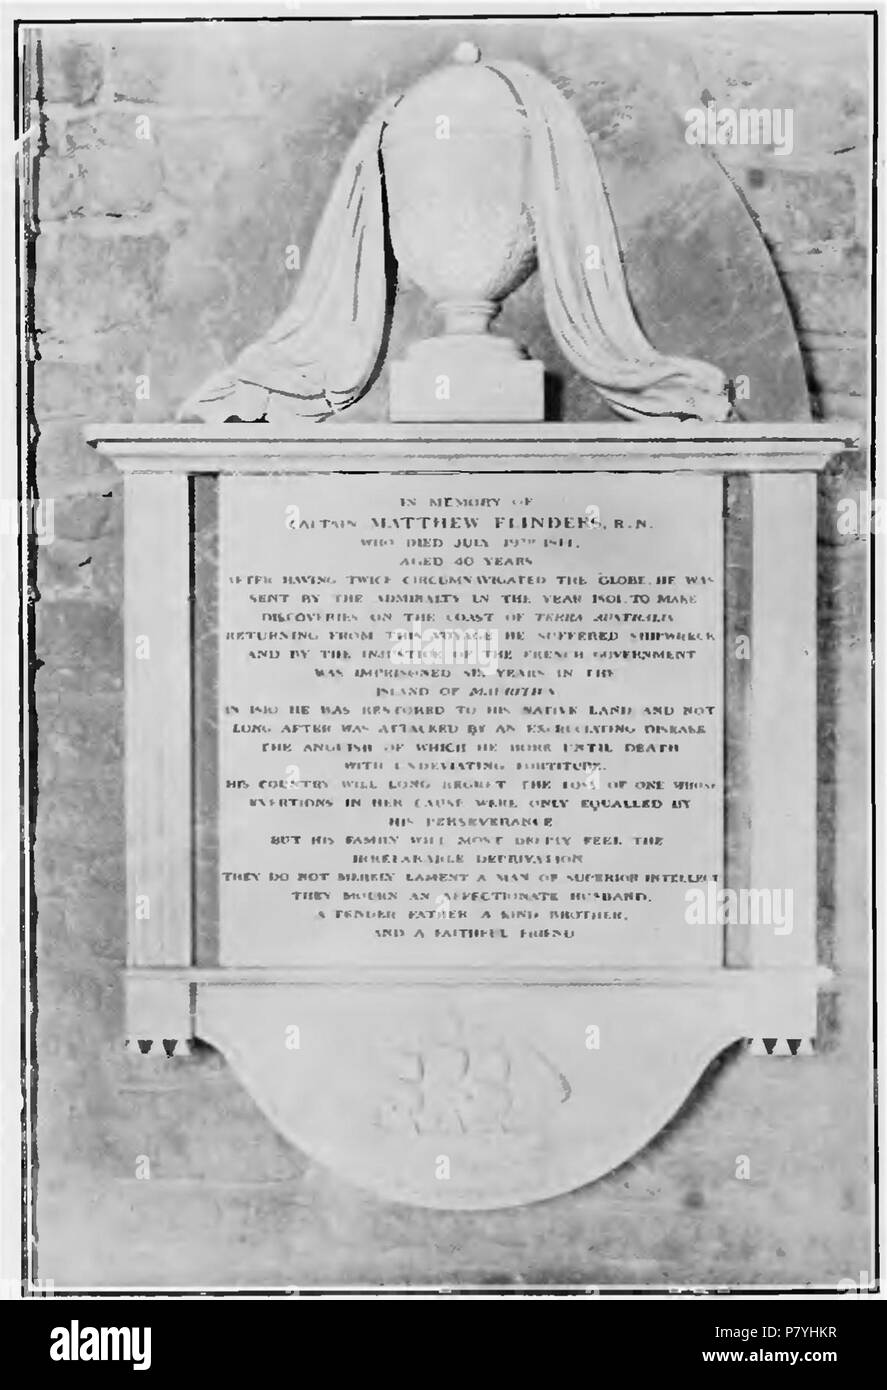 This is the memorial of Matthew Flinders displayed on page 521 in The Life of Matthew Flinders by Ernest Scott. The memorial reads: in memory of captain MATTHEW FLINDERS, r.n. aged 40 years after having twice circumnavigated the globe. he was sent by the admiralty in the year 1801, to make discoveries on the coast of terra australis. returning from this voyage he suffered shipwreck and by the injustice of the french government was imprisoned six years in the island of mauritius. in 1810 he was restored to his native land and not long after was attacked by an excruciating disease. the anguish h - Stock Image